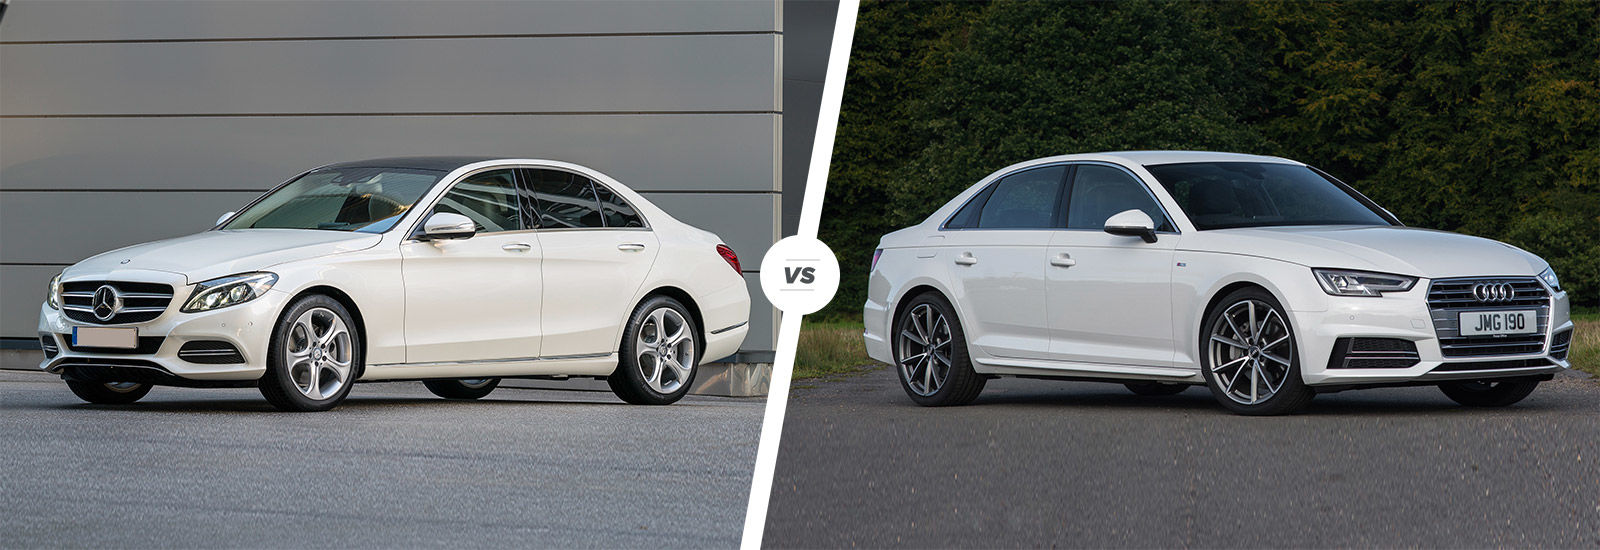 Mercedes C Class Vs Audi A4 U2013 Side By Side Comparison